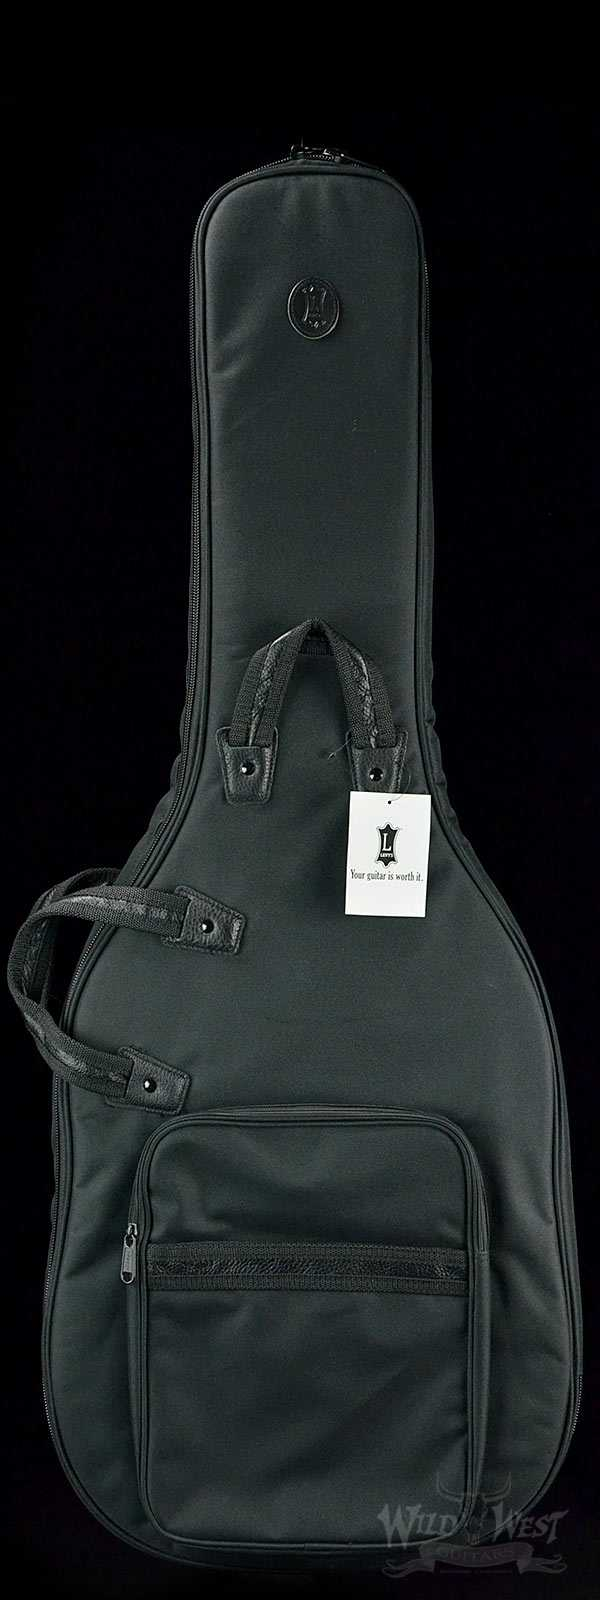 Levy's Leather Polyester Gig Bag CCG118 Black